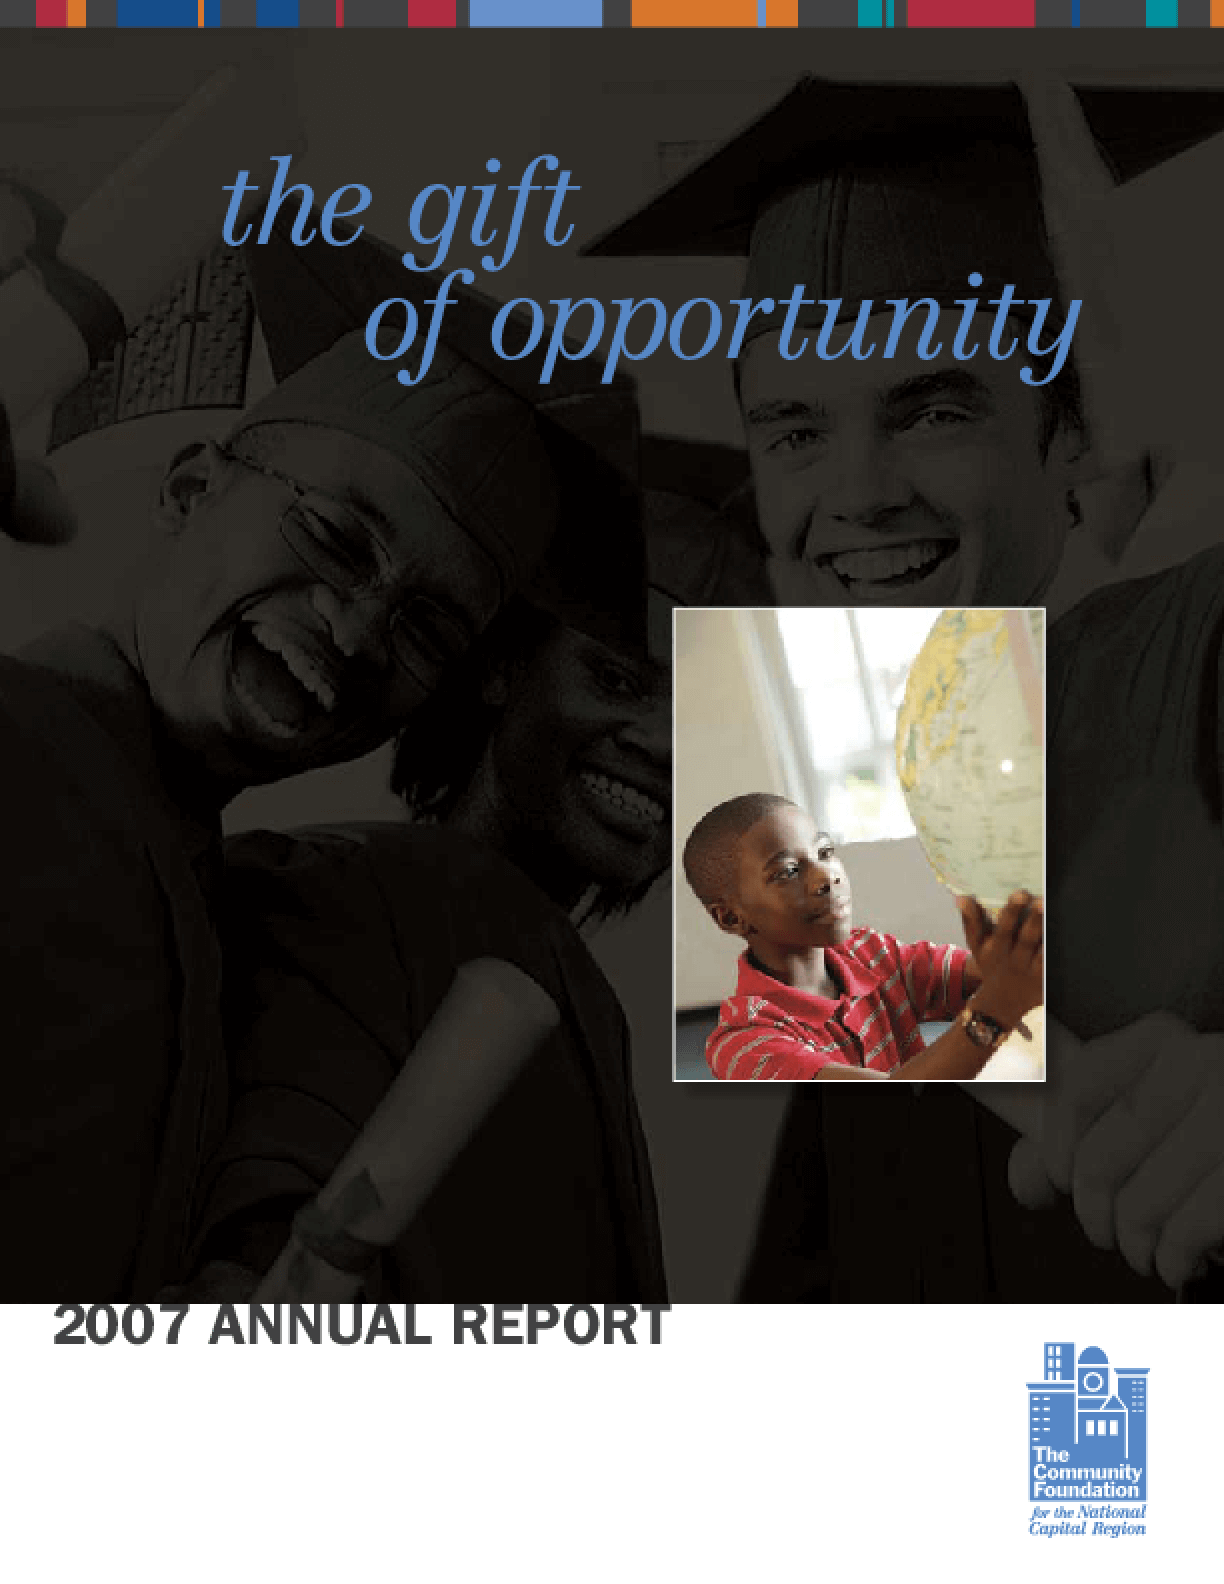 Community Foundation for the National Capital Region - 2007 Annual Report: The Gift of Opportunity